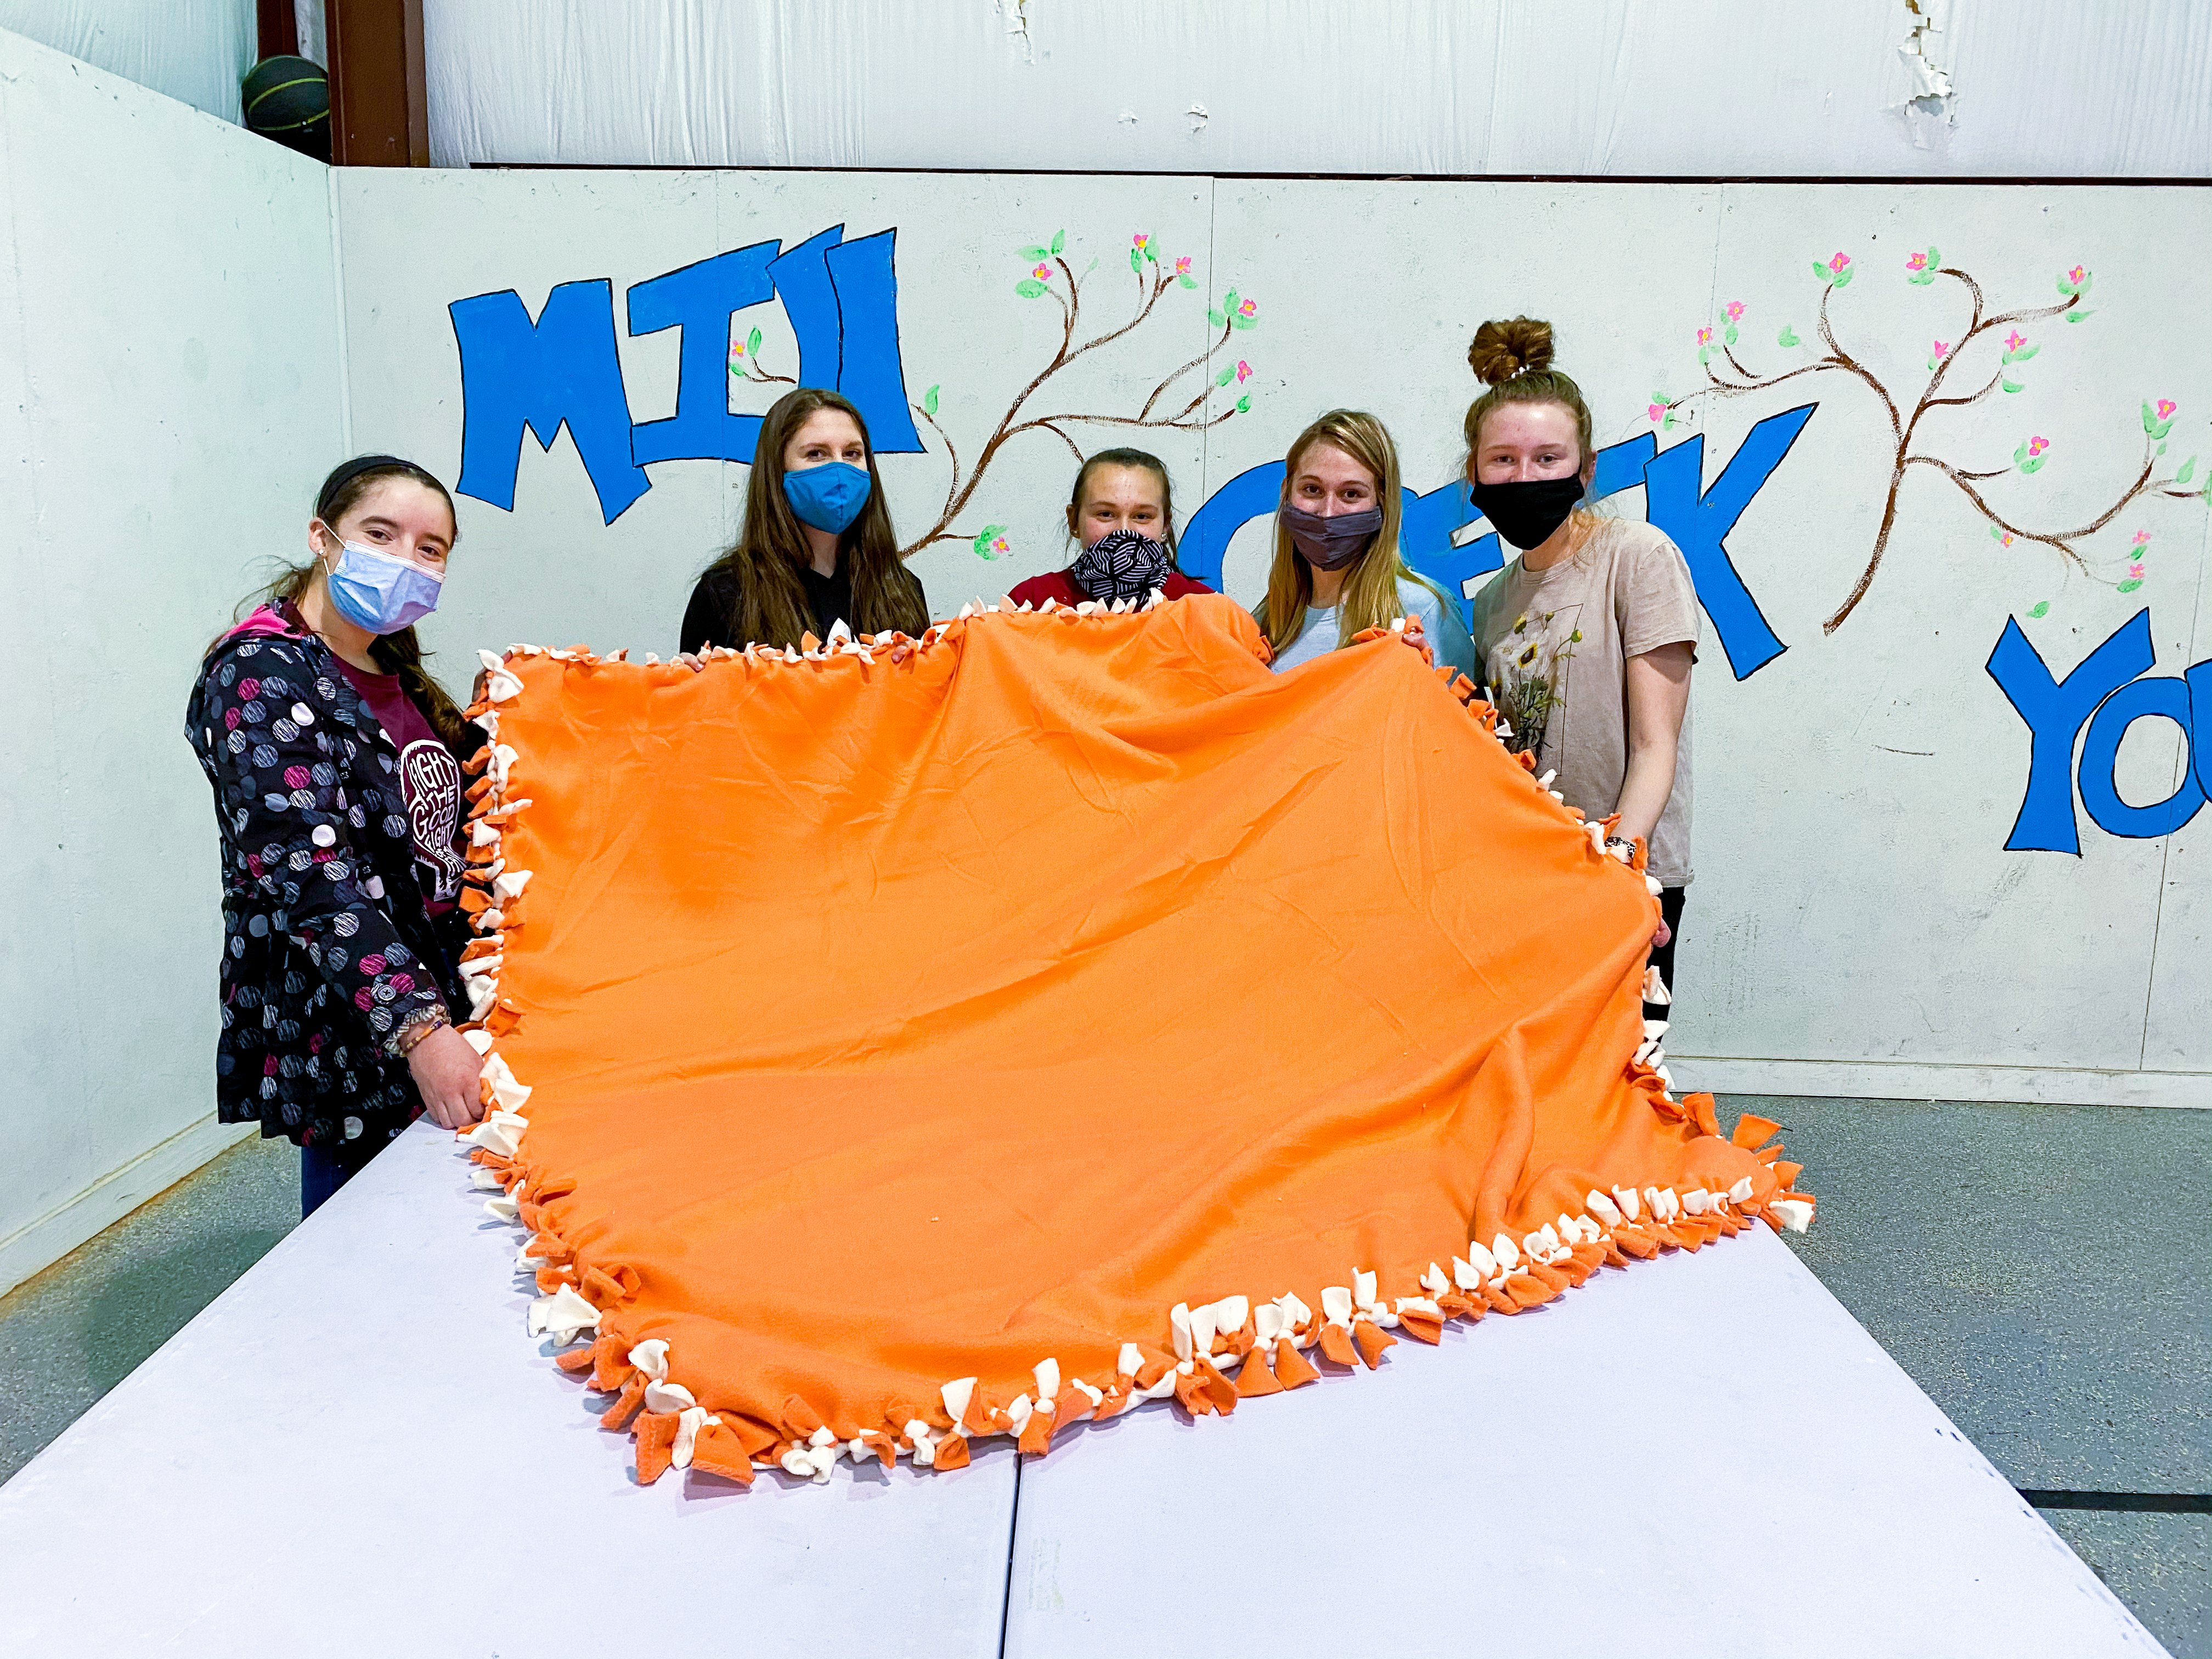 5 children standing with a large orange blanket in front of them.